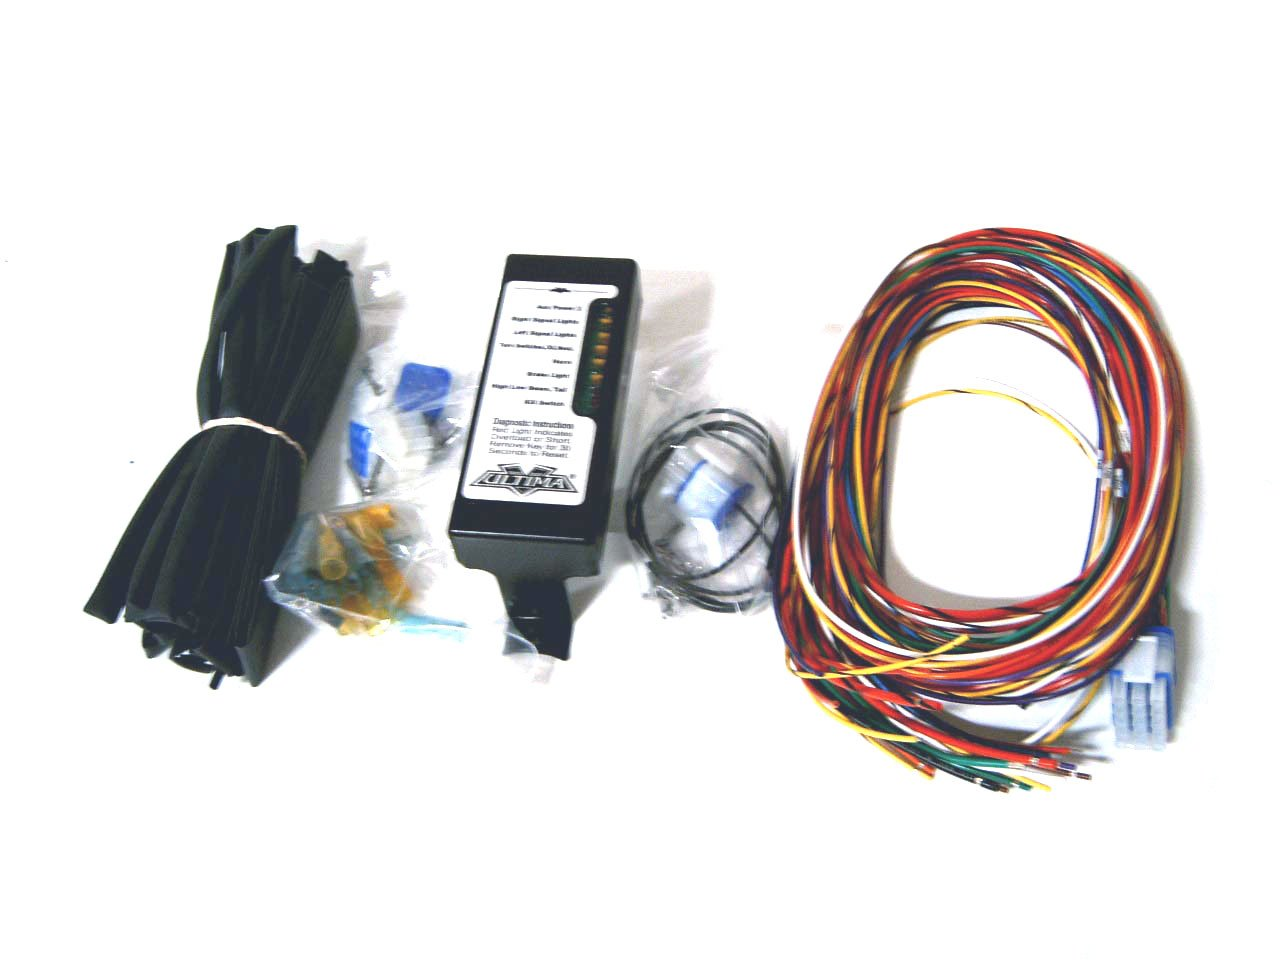 61DV2Bq5%2BHL._SL1280_ amazon com ultima complete wiring harness kit for harley davidson auto wiring harness kits at virtualis.co